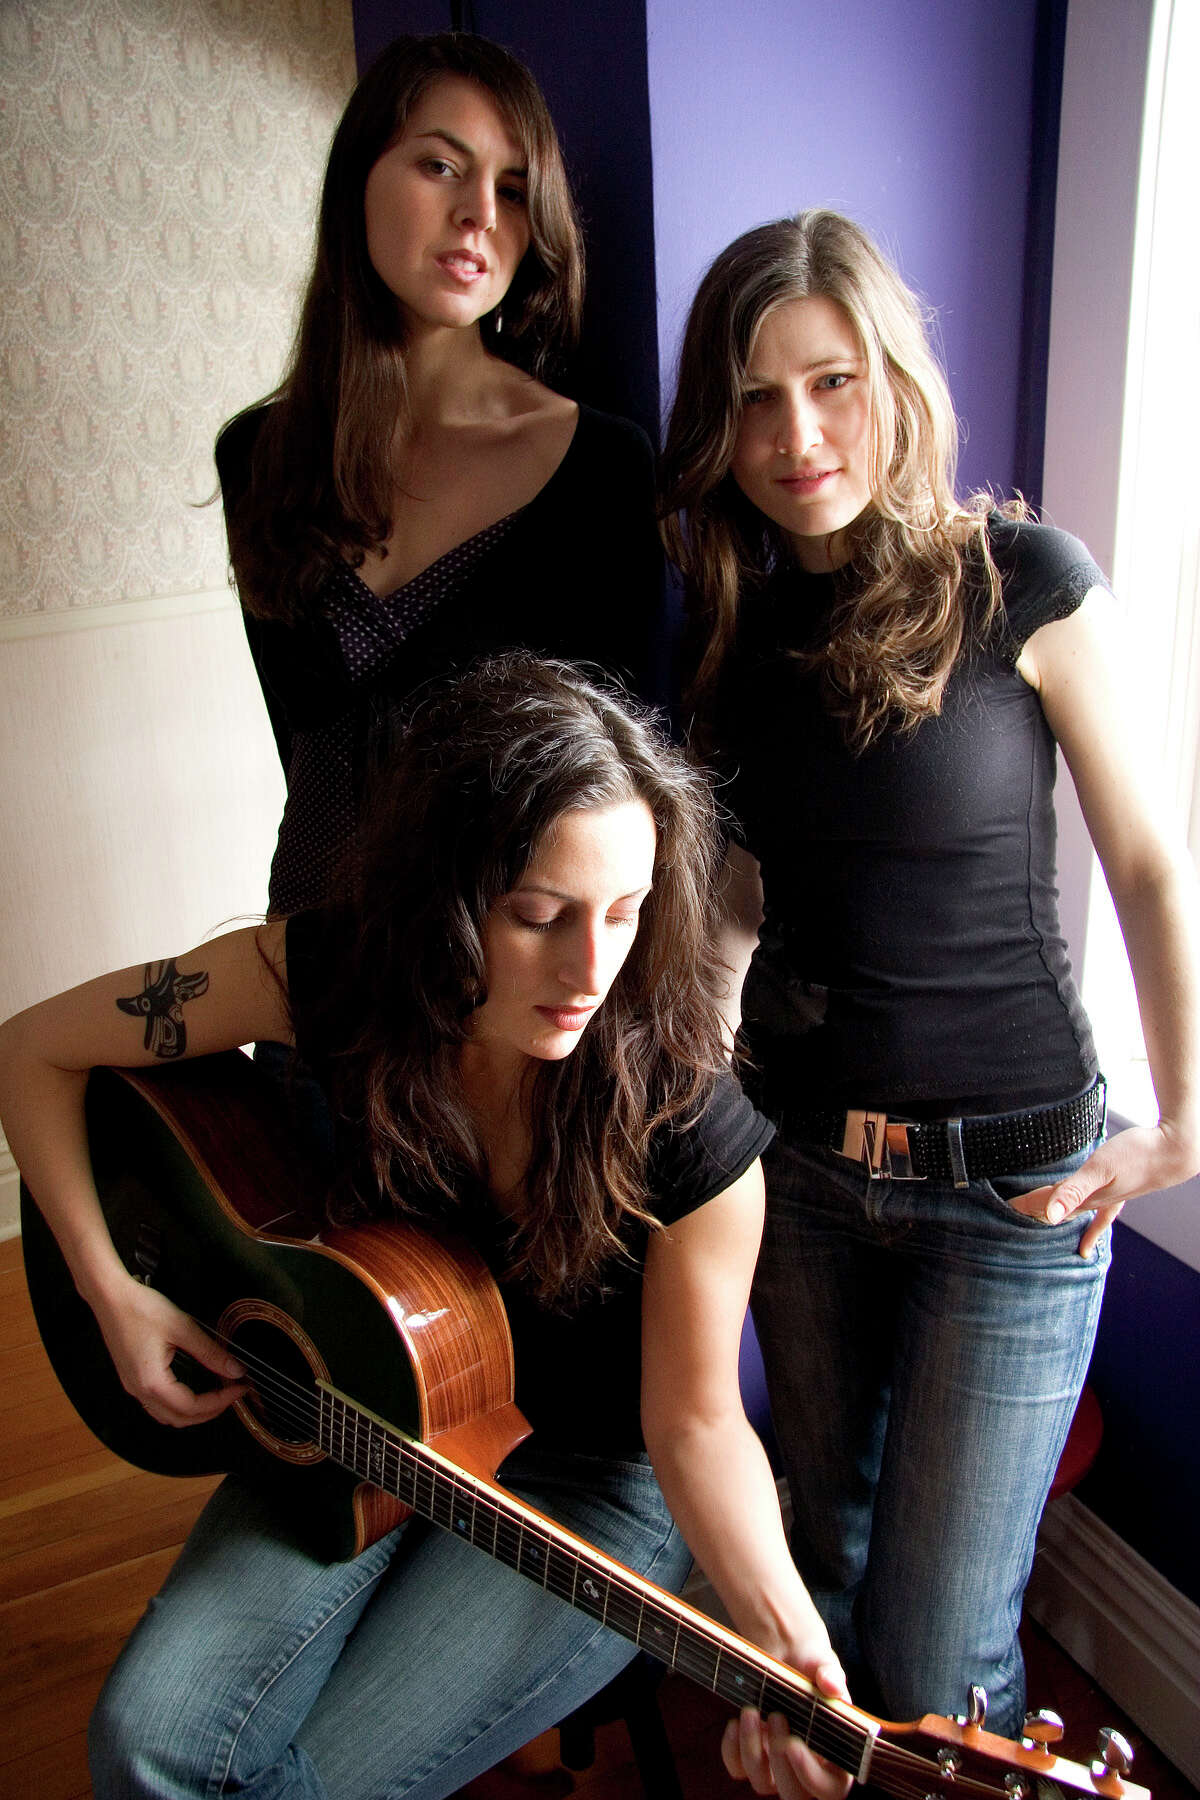 Folk musicians, The Wailin' Jennys will be performing at The Egg on Sunday. Learn more.